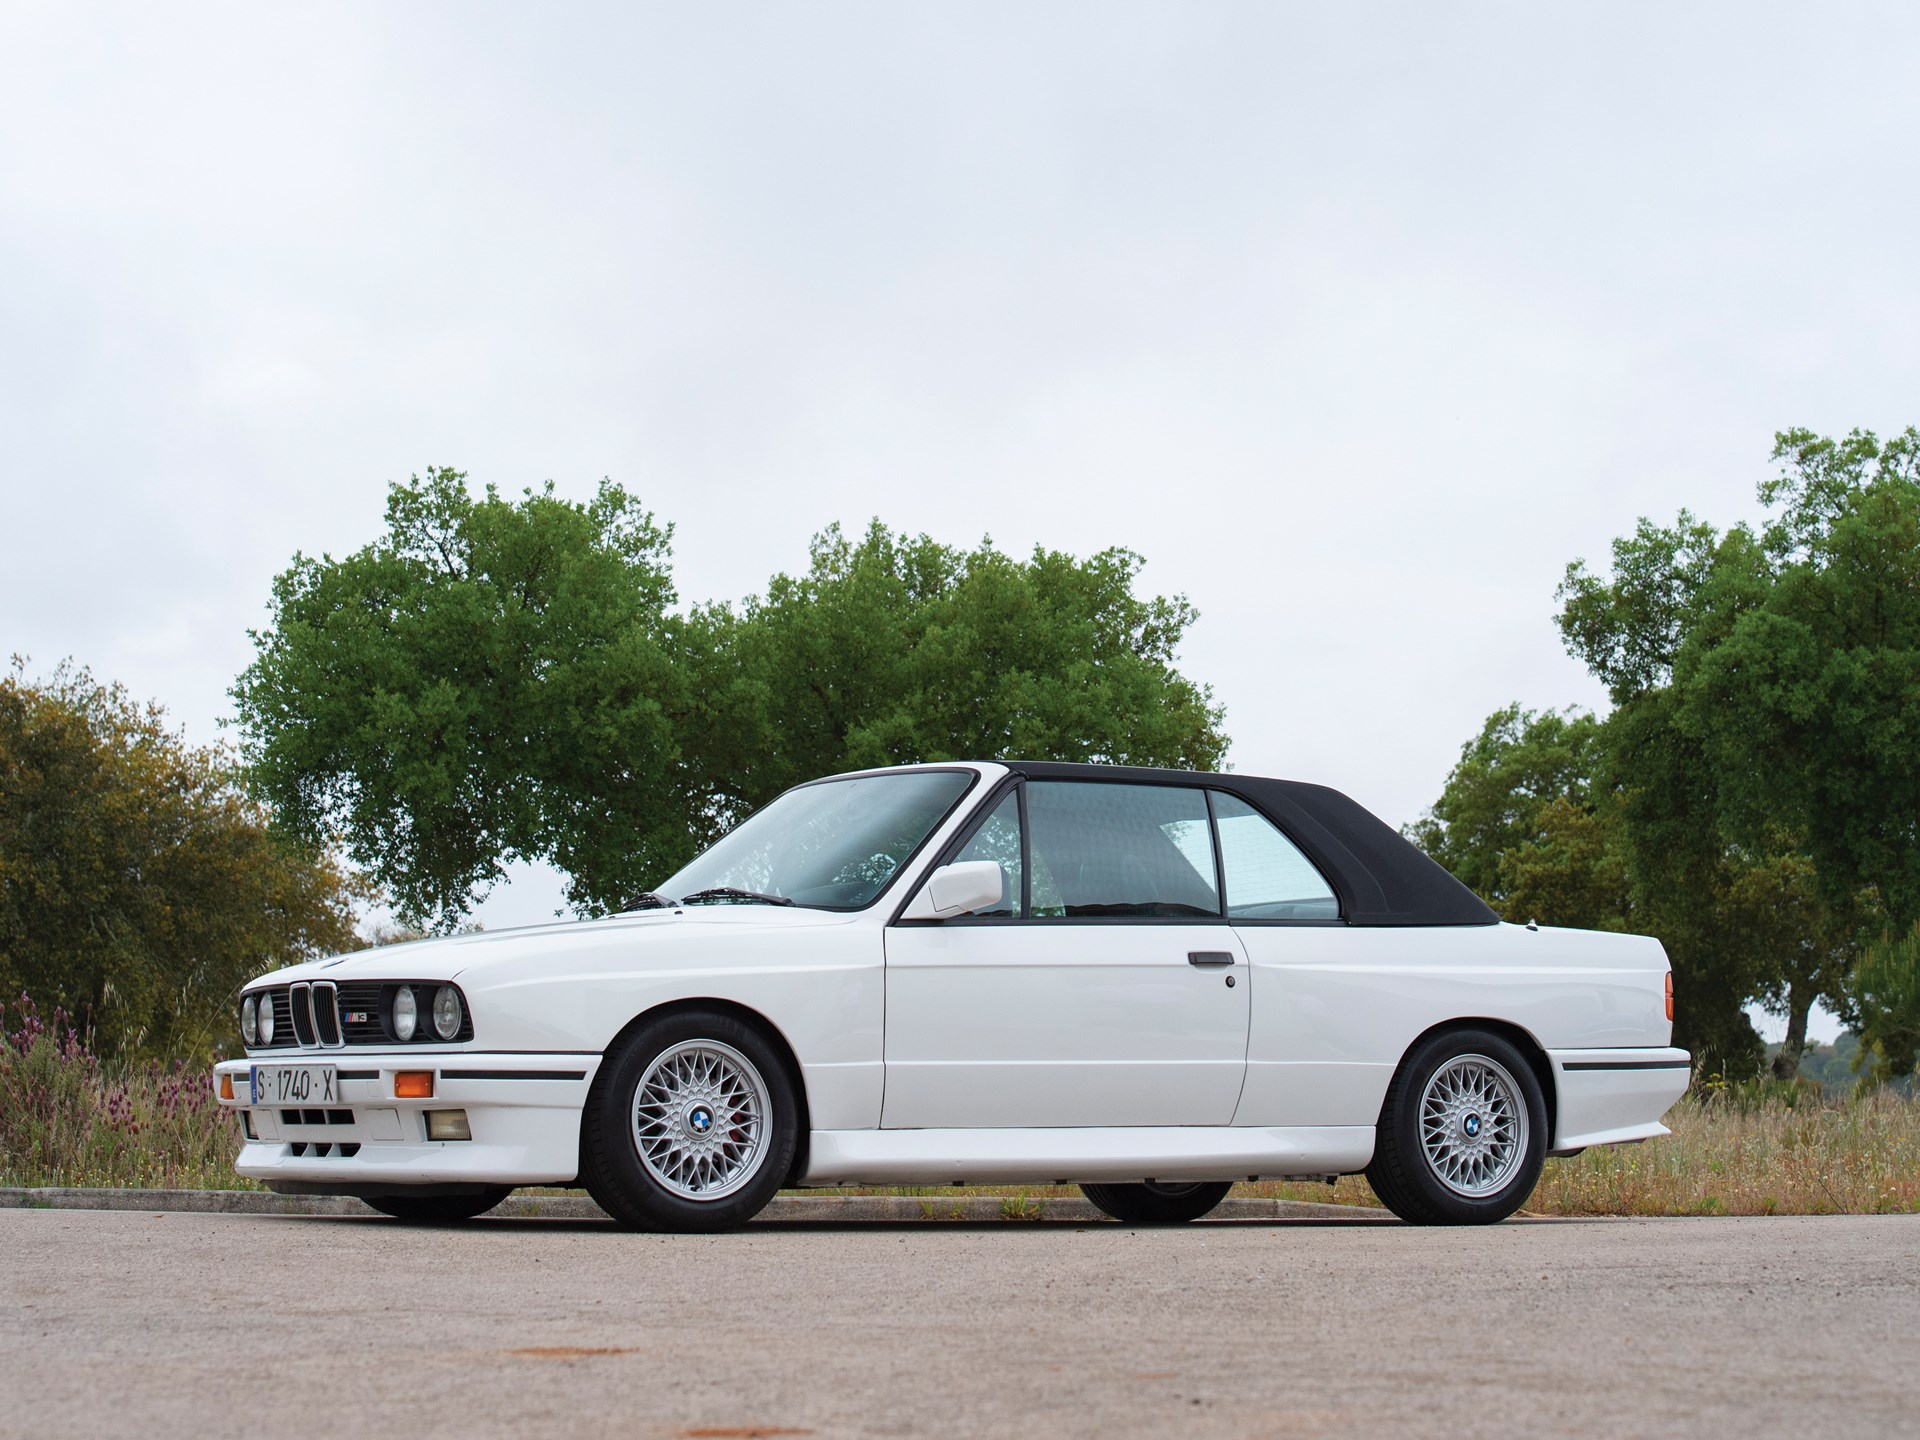 Bmw M3 Convertible >> Rm Sotheby S 1990 Bmw M3 Convertible The Saragga Collection